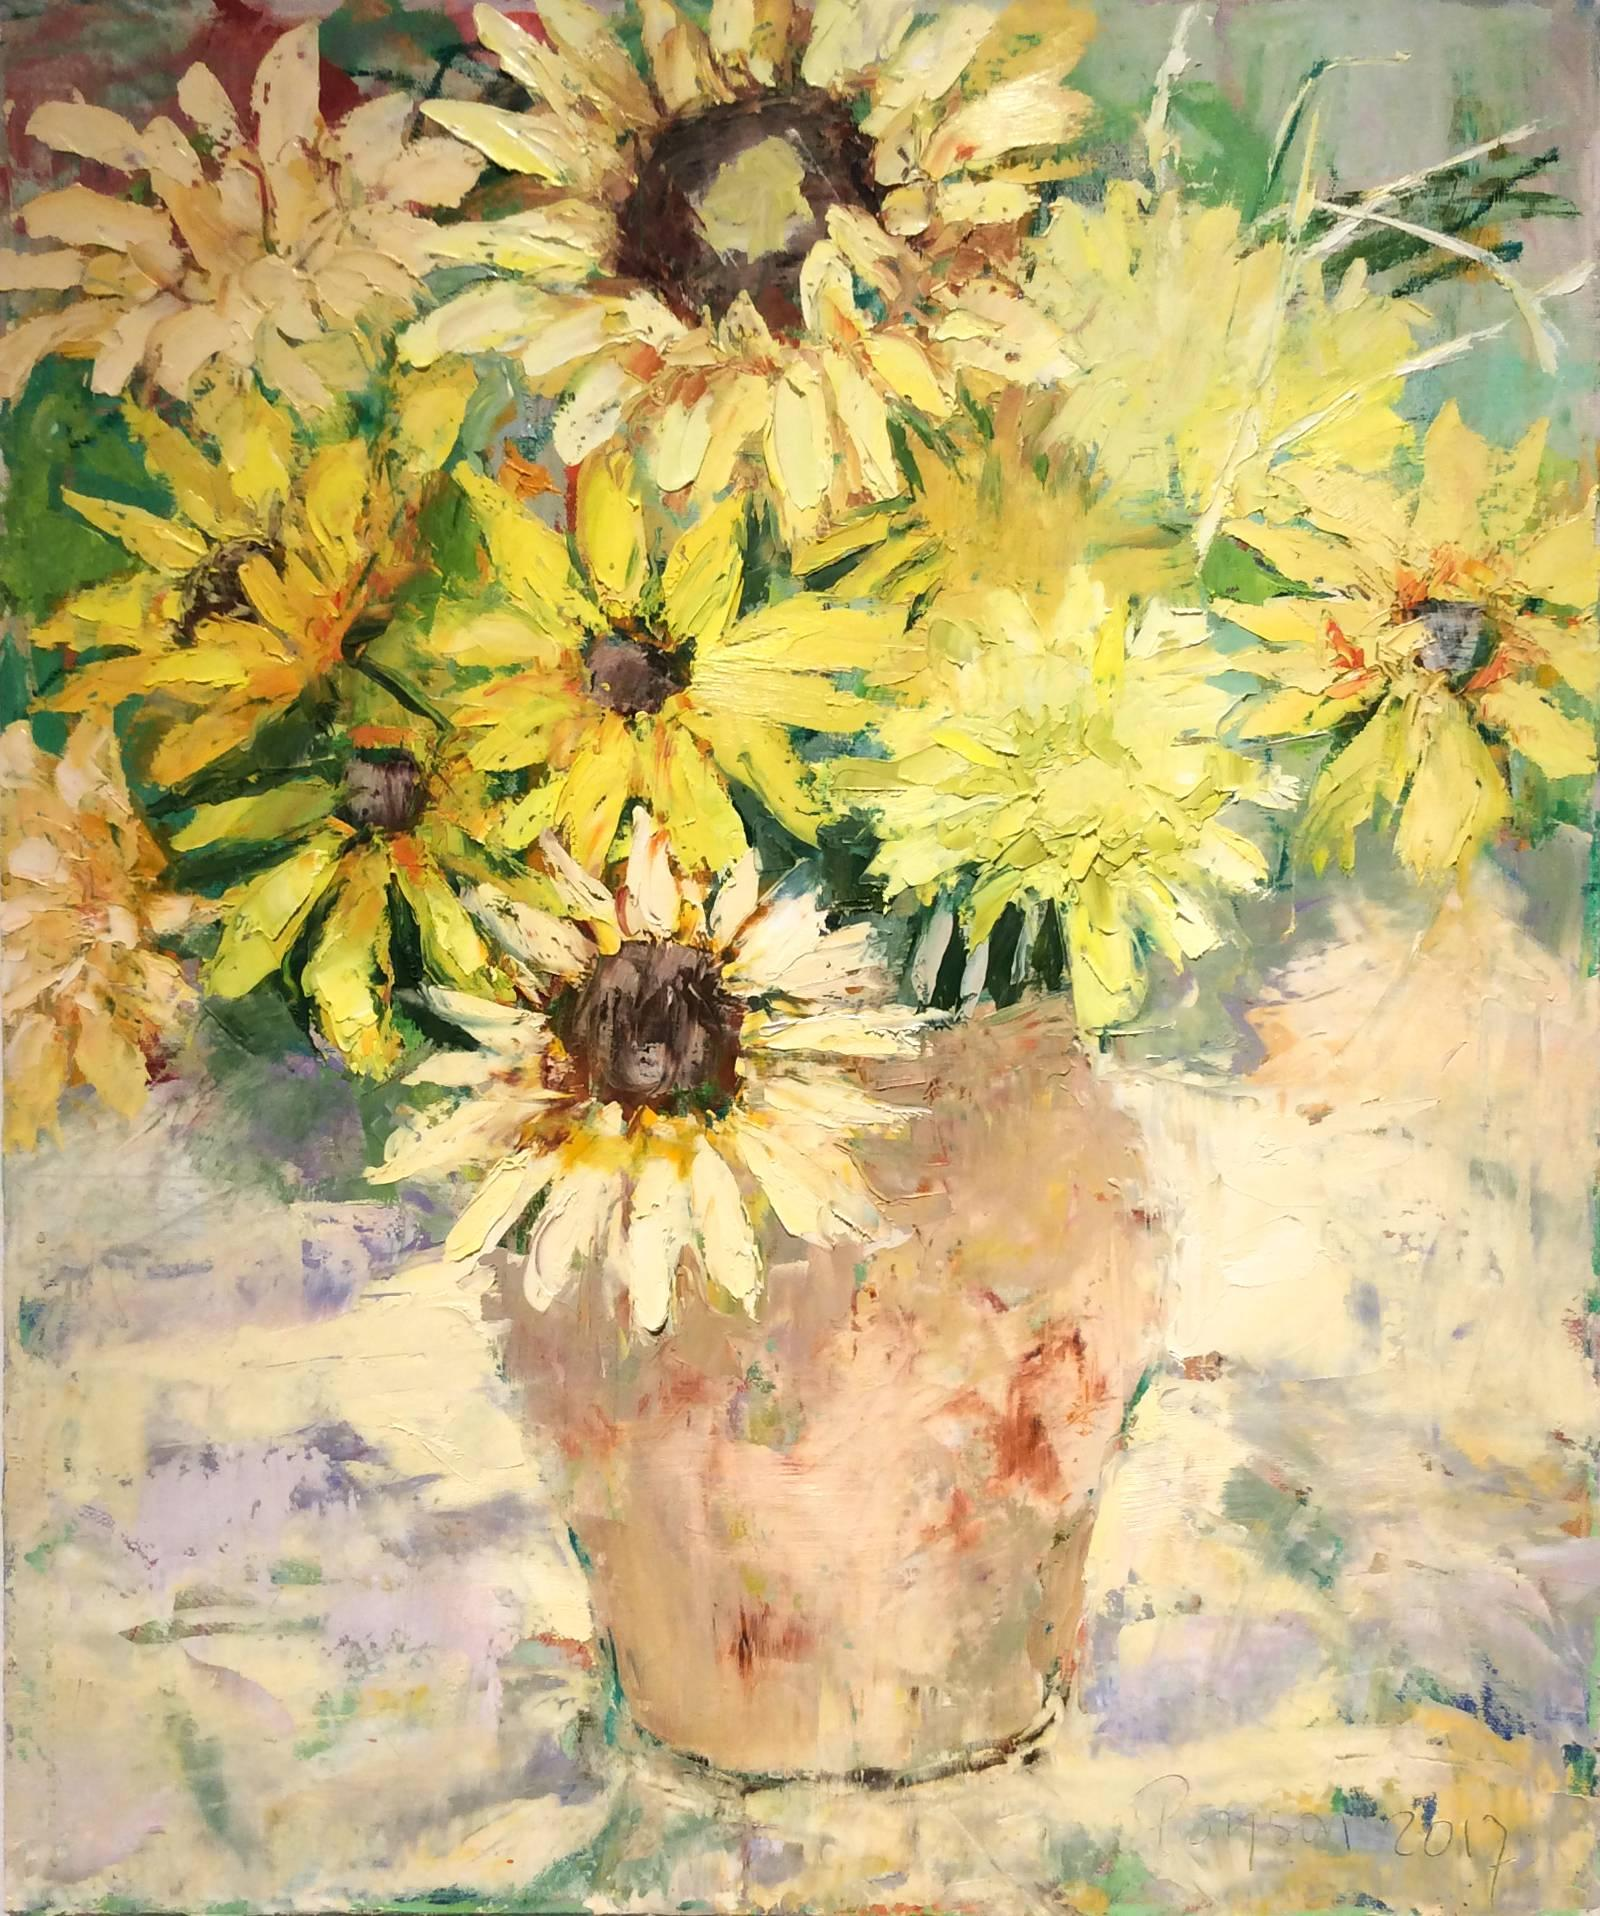 Sunflowers in Beige Vase (Vertical Still Life Oil Painting on Canvas)